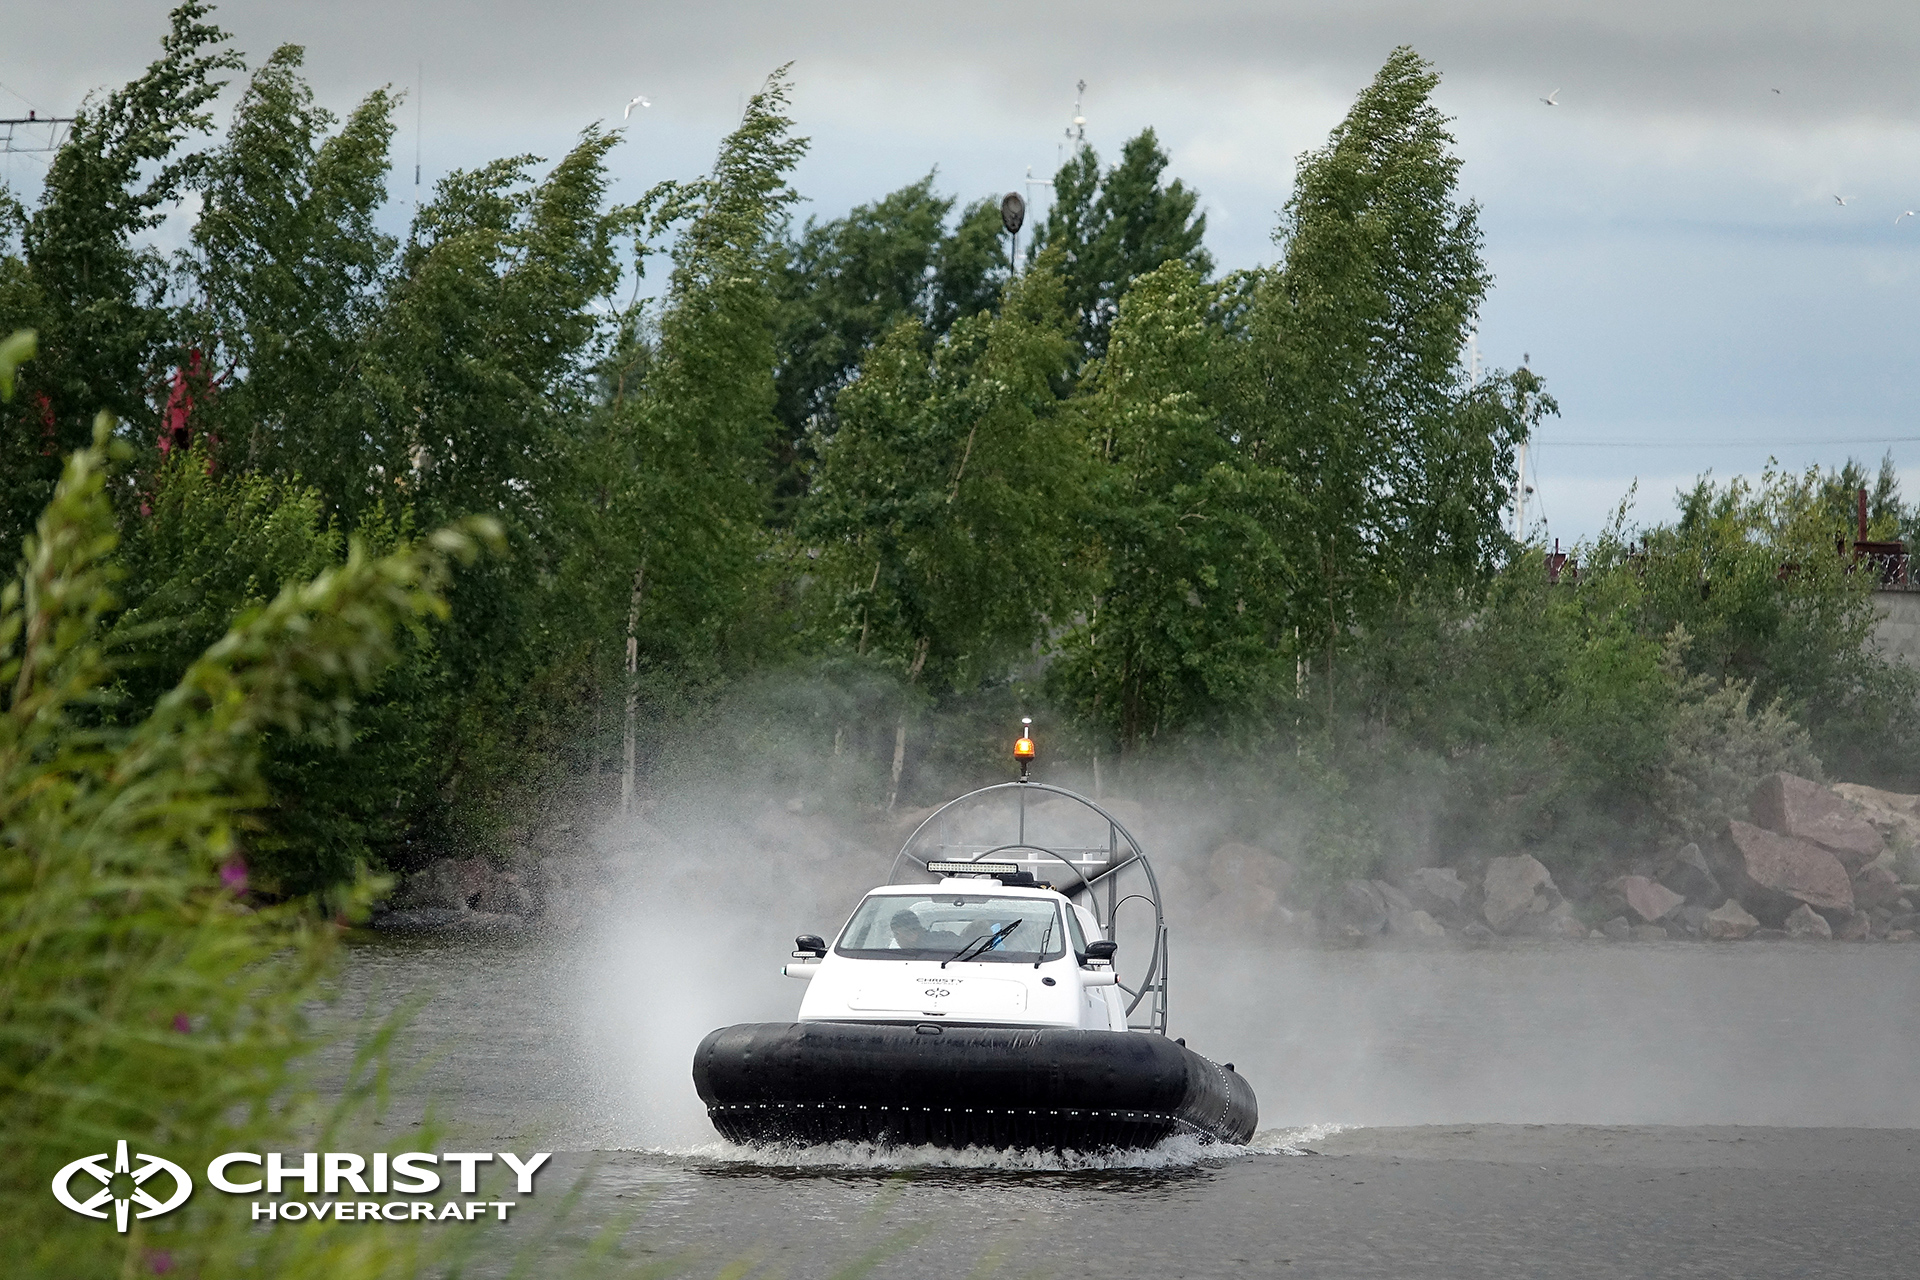 Hovercraft Christy 463 PC in Storm 290618 11.jpg | фото №9